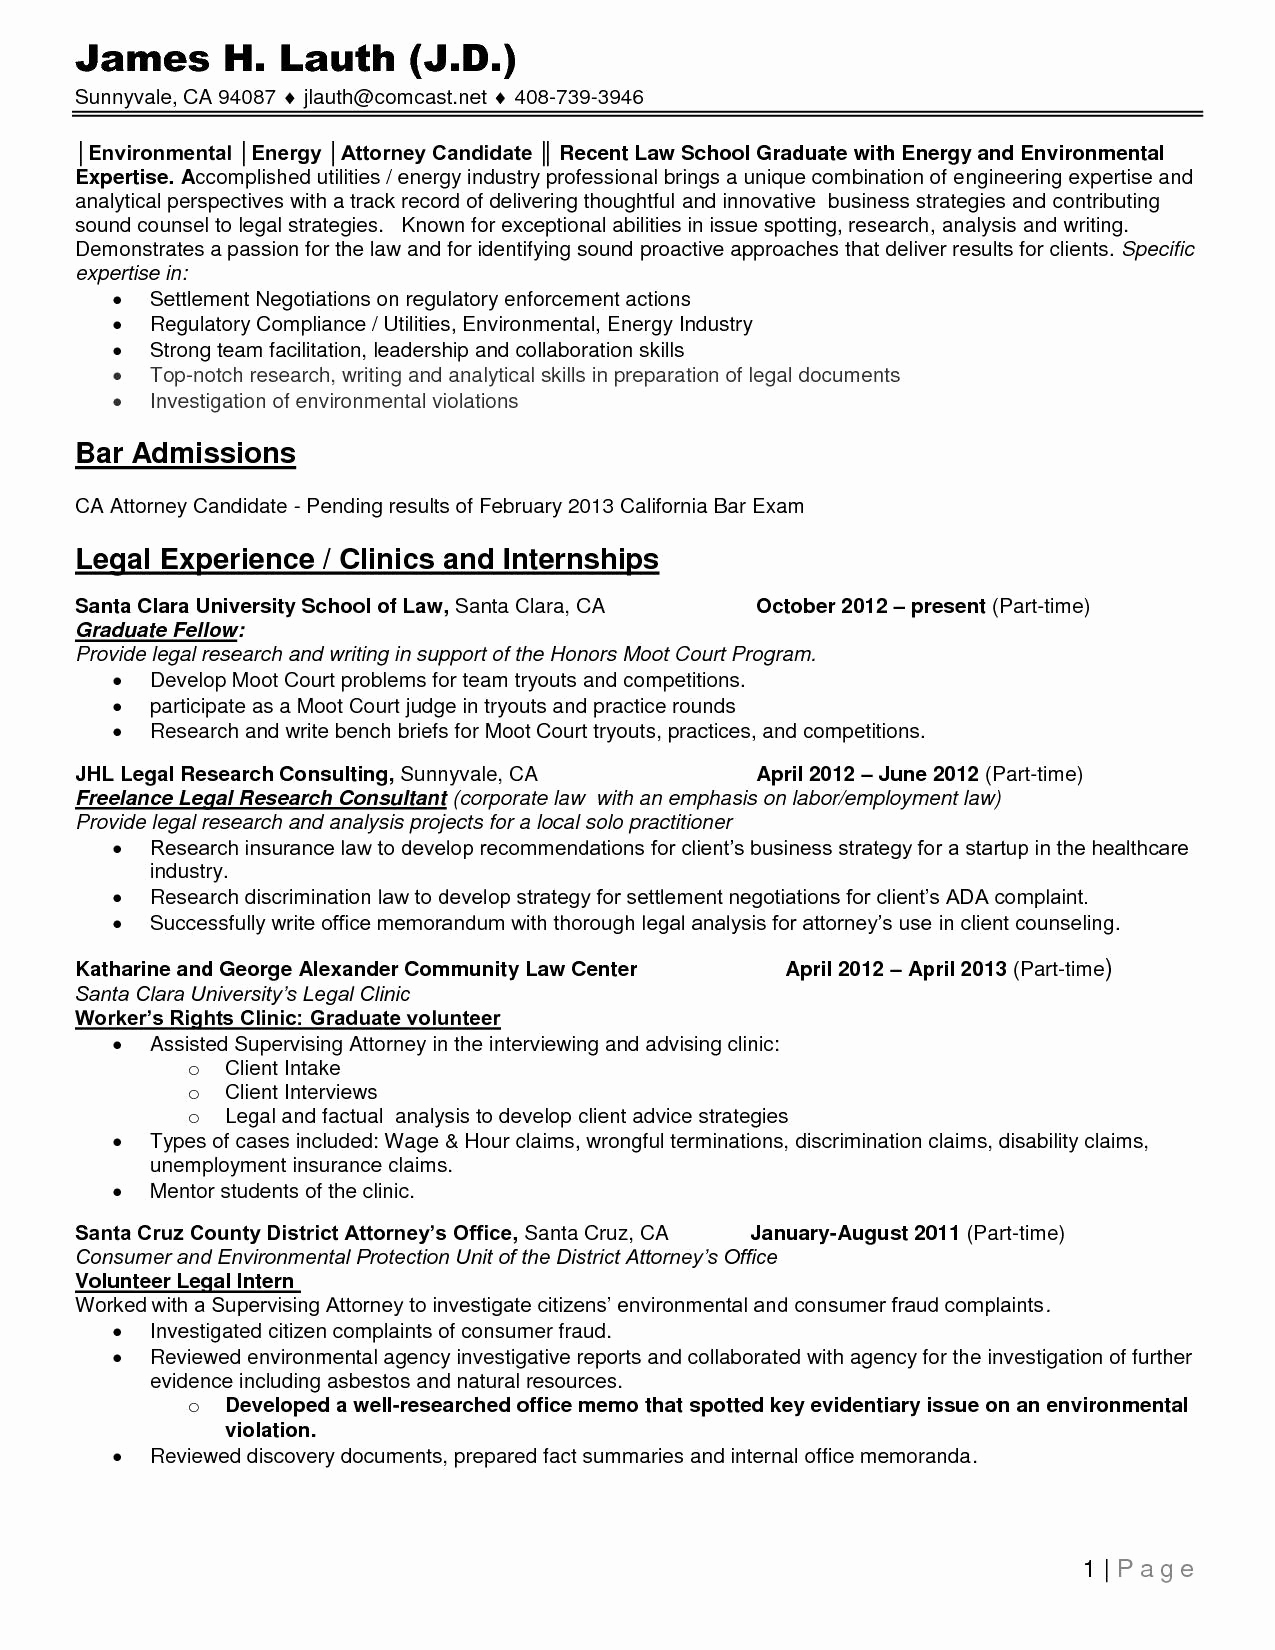 Law Firm Letter Template - Legal Cover Letter Template Beautiful Sample Legal Cover Letter